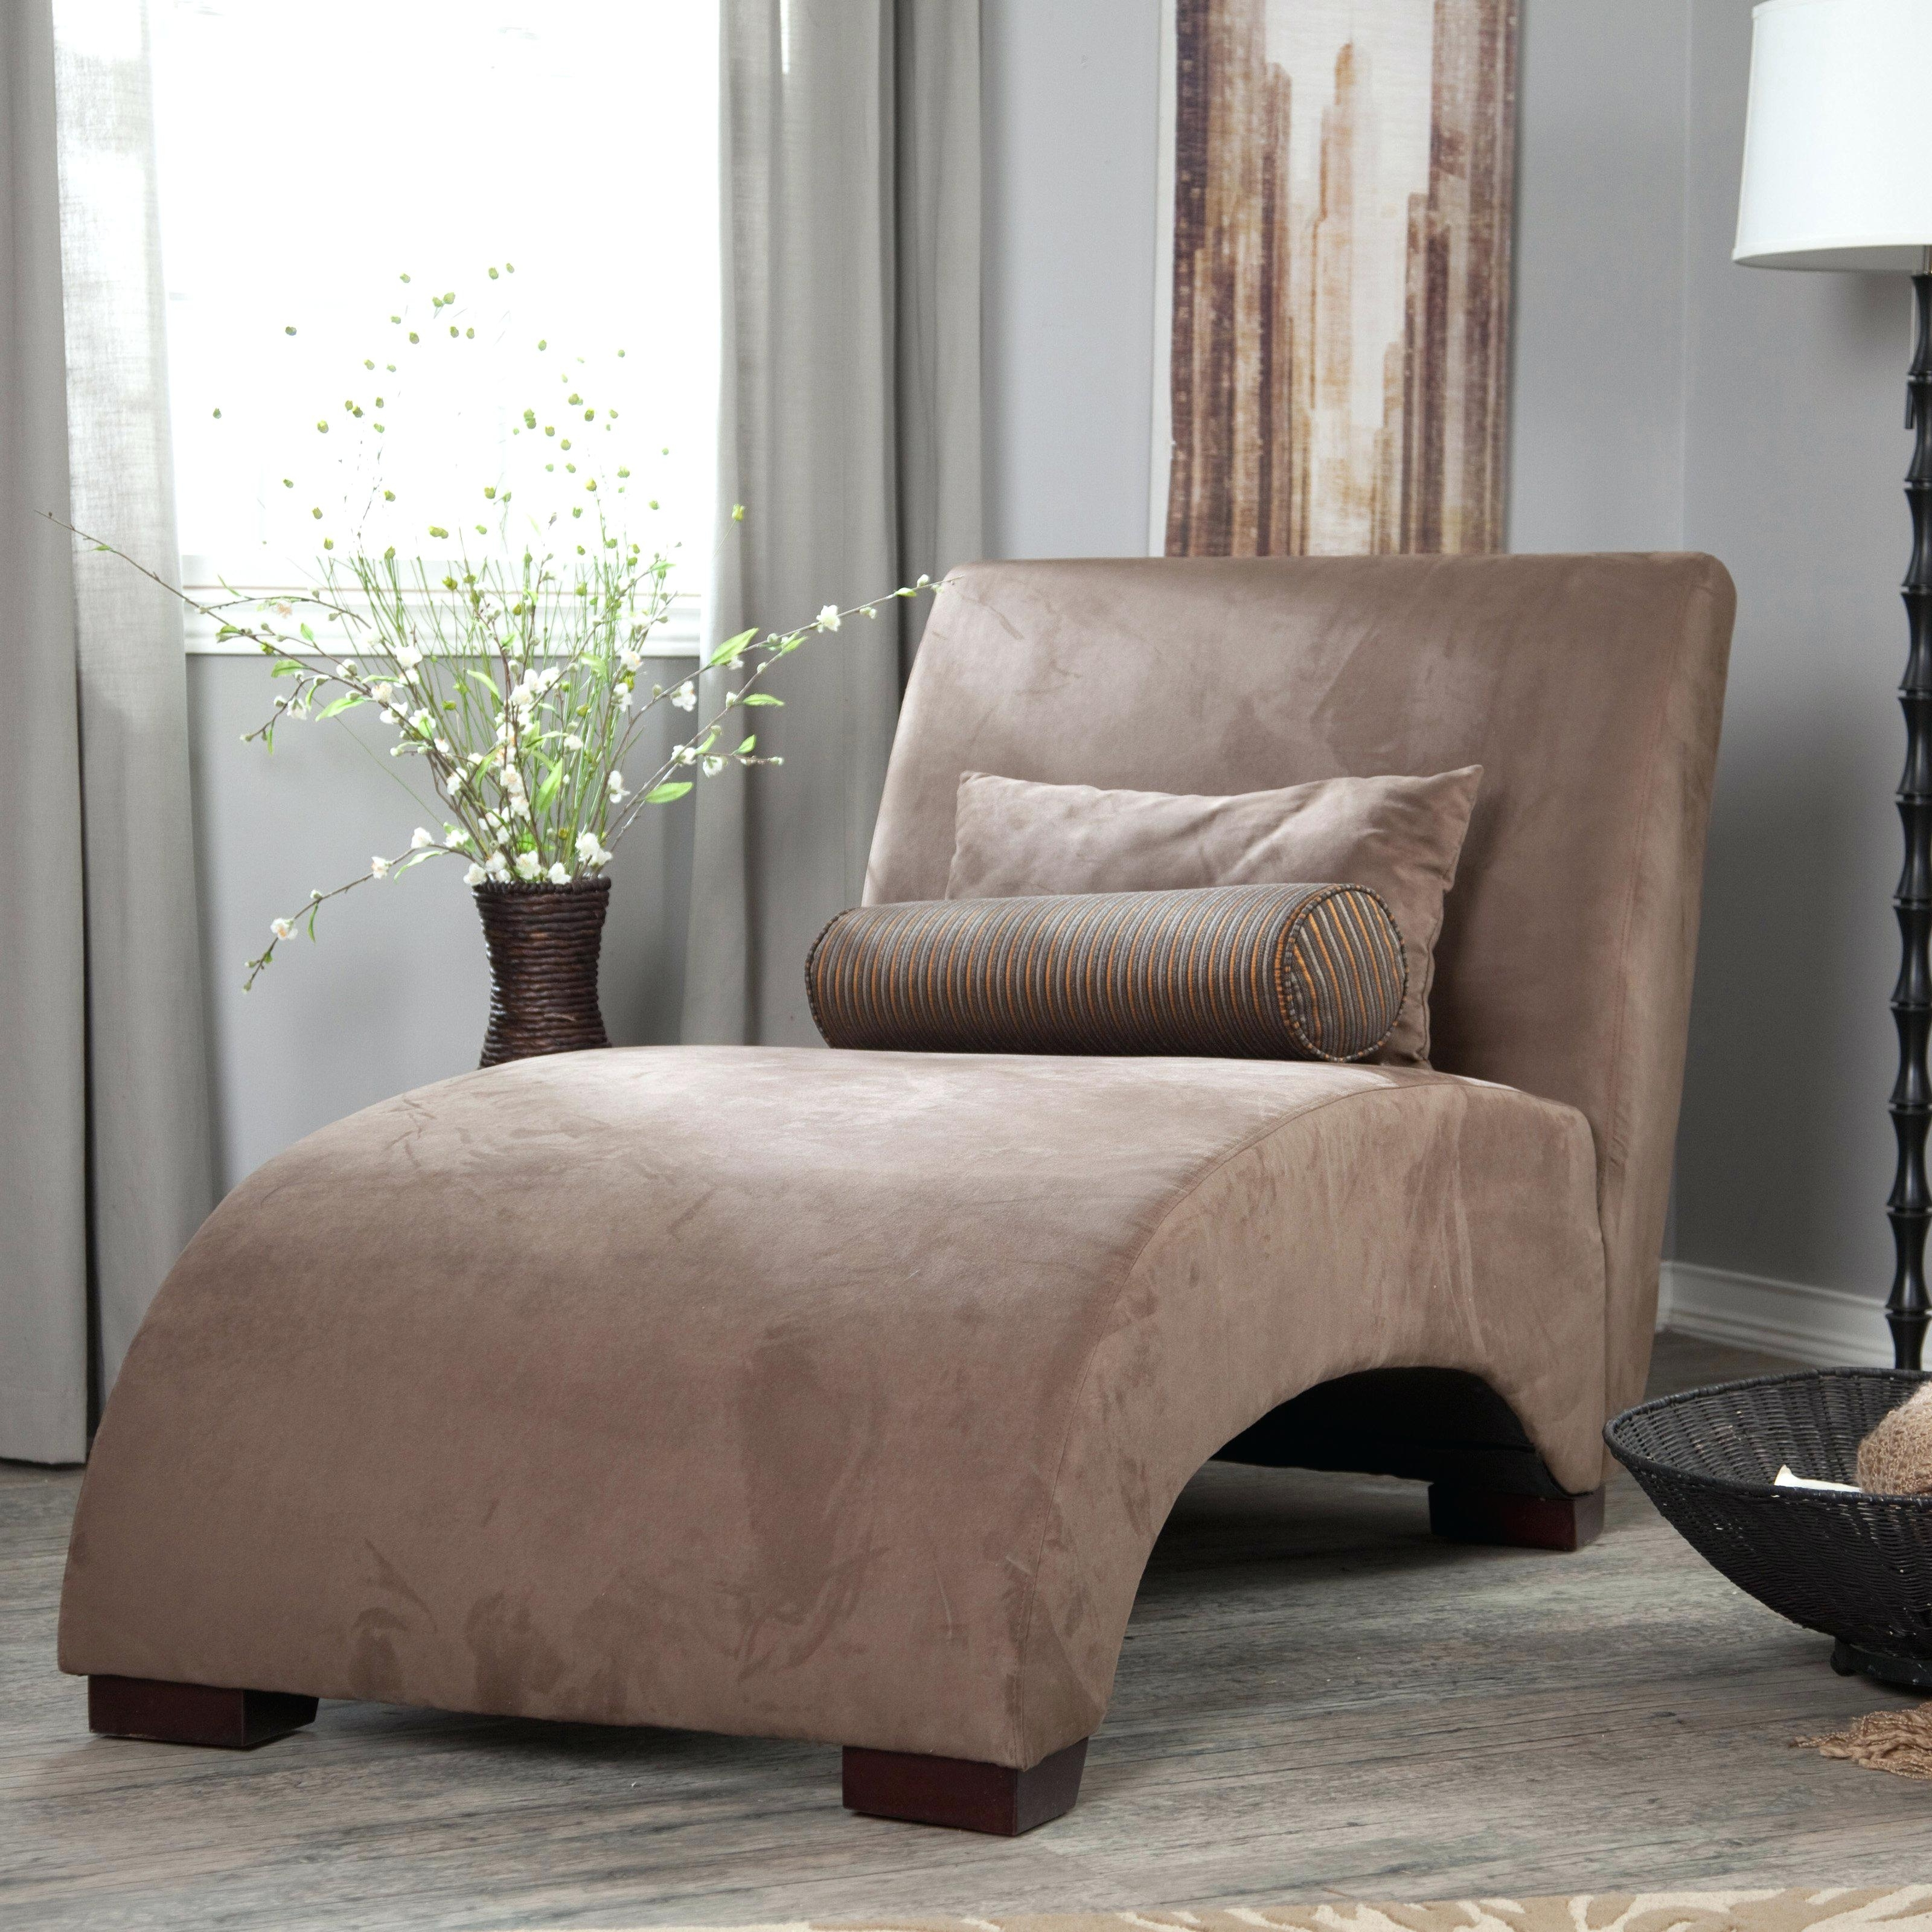 Armless Lounge Chair Slipcovers • Lounge Chairs Ideas Within Most Current Covers For Chaise Lounge Chair (View 2 of 15)